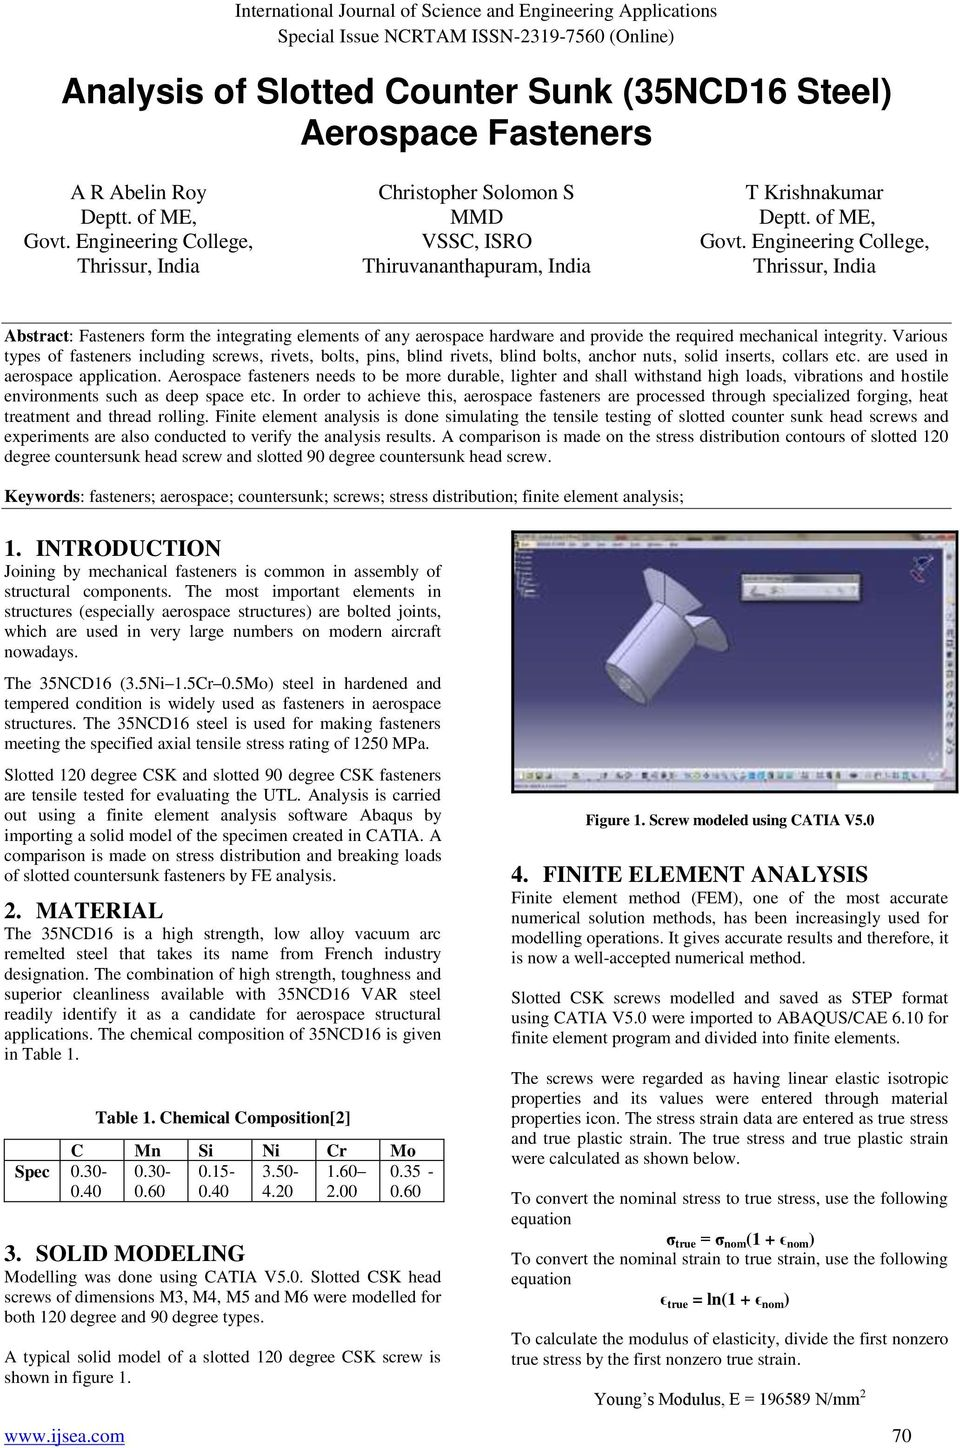 Analysis of Slotted Counter Sunk (35NCD16 Steel) Aerospace Fasteners